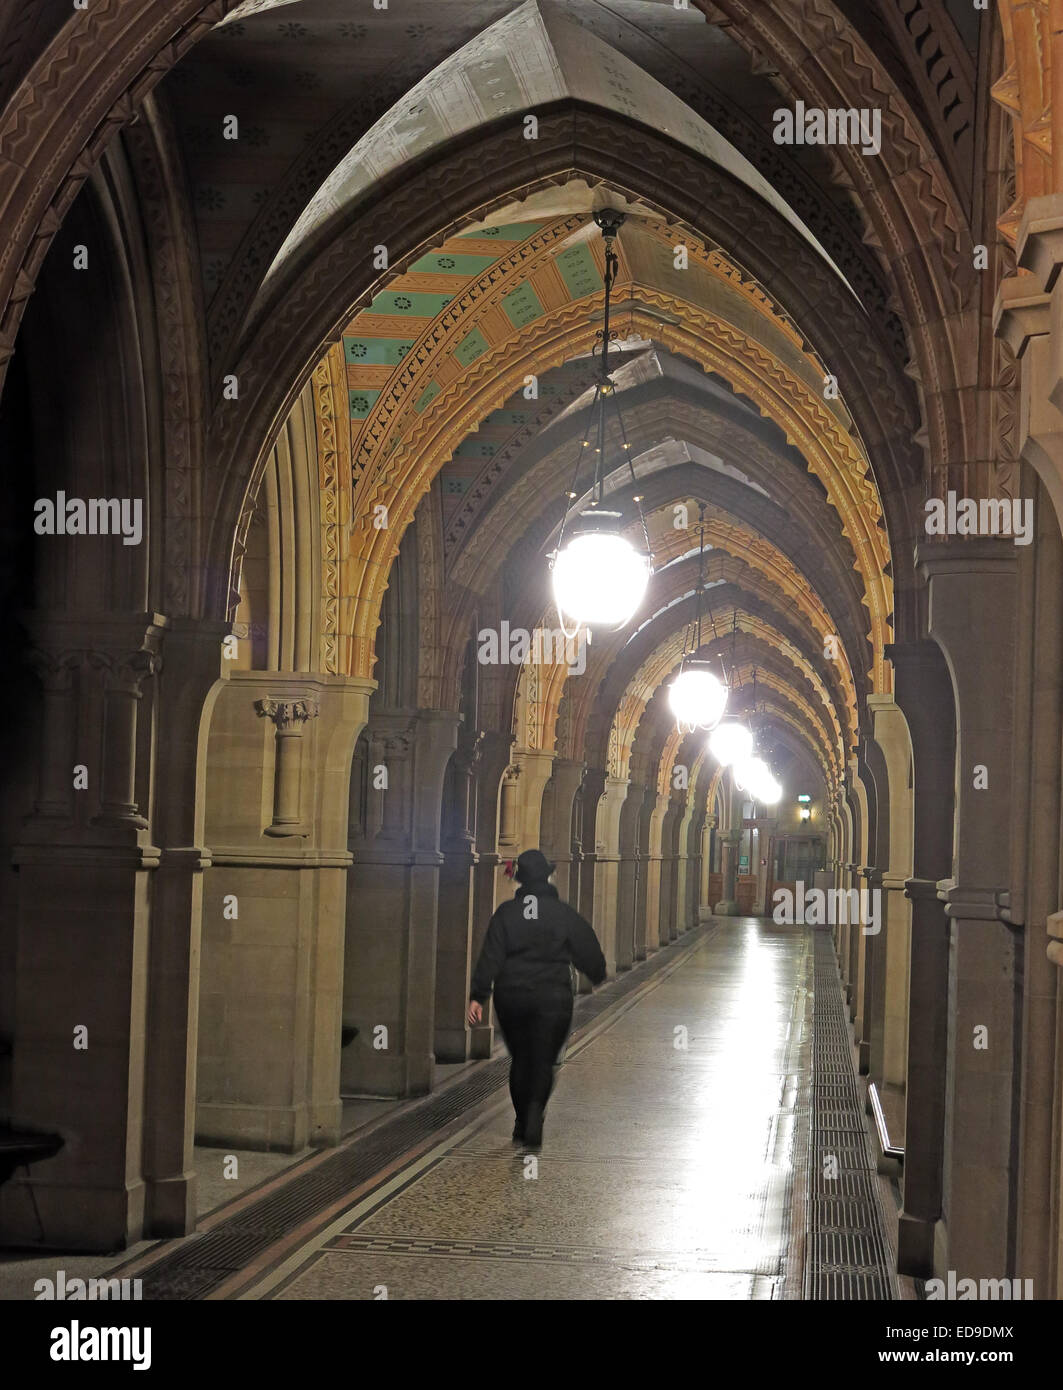 Corridor person walking down a silhouette shadow Victorian,Neo-gothic,municipal,building,neogothic,stone,marble,ceremonial,headquarters,city,council,architect,Alfred,Waterhouse,grand,ceremonial,rooms,Great,Abel,the,clock,bell,Grade,I,listed,one,Corporation,walk,walks,lighted,lit,inside,interior,GoTonySmith Manchester Town Hall is a Victorian,Neo-gothic municipal building in Manchester,England.,It,is,the,ceremonial,headquarters,of,Manchester,City,Council,and,houses,a,number,of,local,government,departments.,The,building,faces,Albert,Square,to,the,north,featuring,the,Albert,Memorial,and,St,Peters,Square,to,the,south,home to The Cenotaph. Designed by architect Alfred Waterhouse,the,town,hall,was,completed,in,1877.,The,building,contains,offices,and,grand,ceremonial,rooms,such,as,the,Great,Hall,which,is,decorated,with,Ford,Madox,Browns,imposing,Manchester,Murals,illustrating,the,history,of,the,city.,The,entrance,and,Sculpture,Hall,contain,busts,and,statues,of,influential,figures,including,Dalton,Joule,and,Barbirolli.,The,exterior,is,dominated,by,the,clock,tower,which,rises,to,280,feet,(85,m),and,houses,Great,Abel,the clock bell